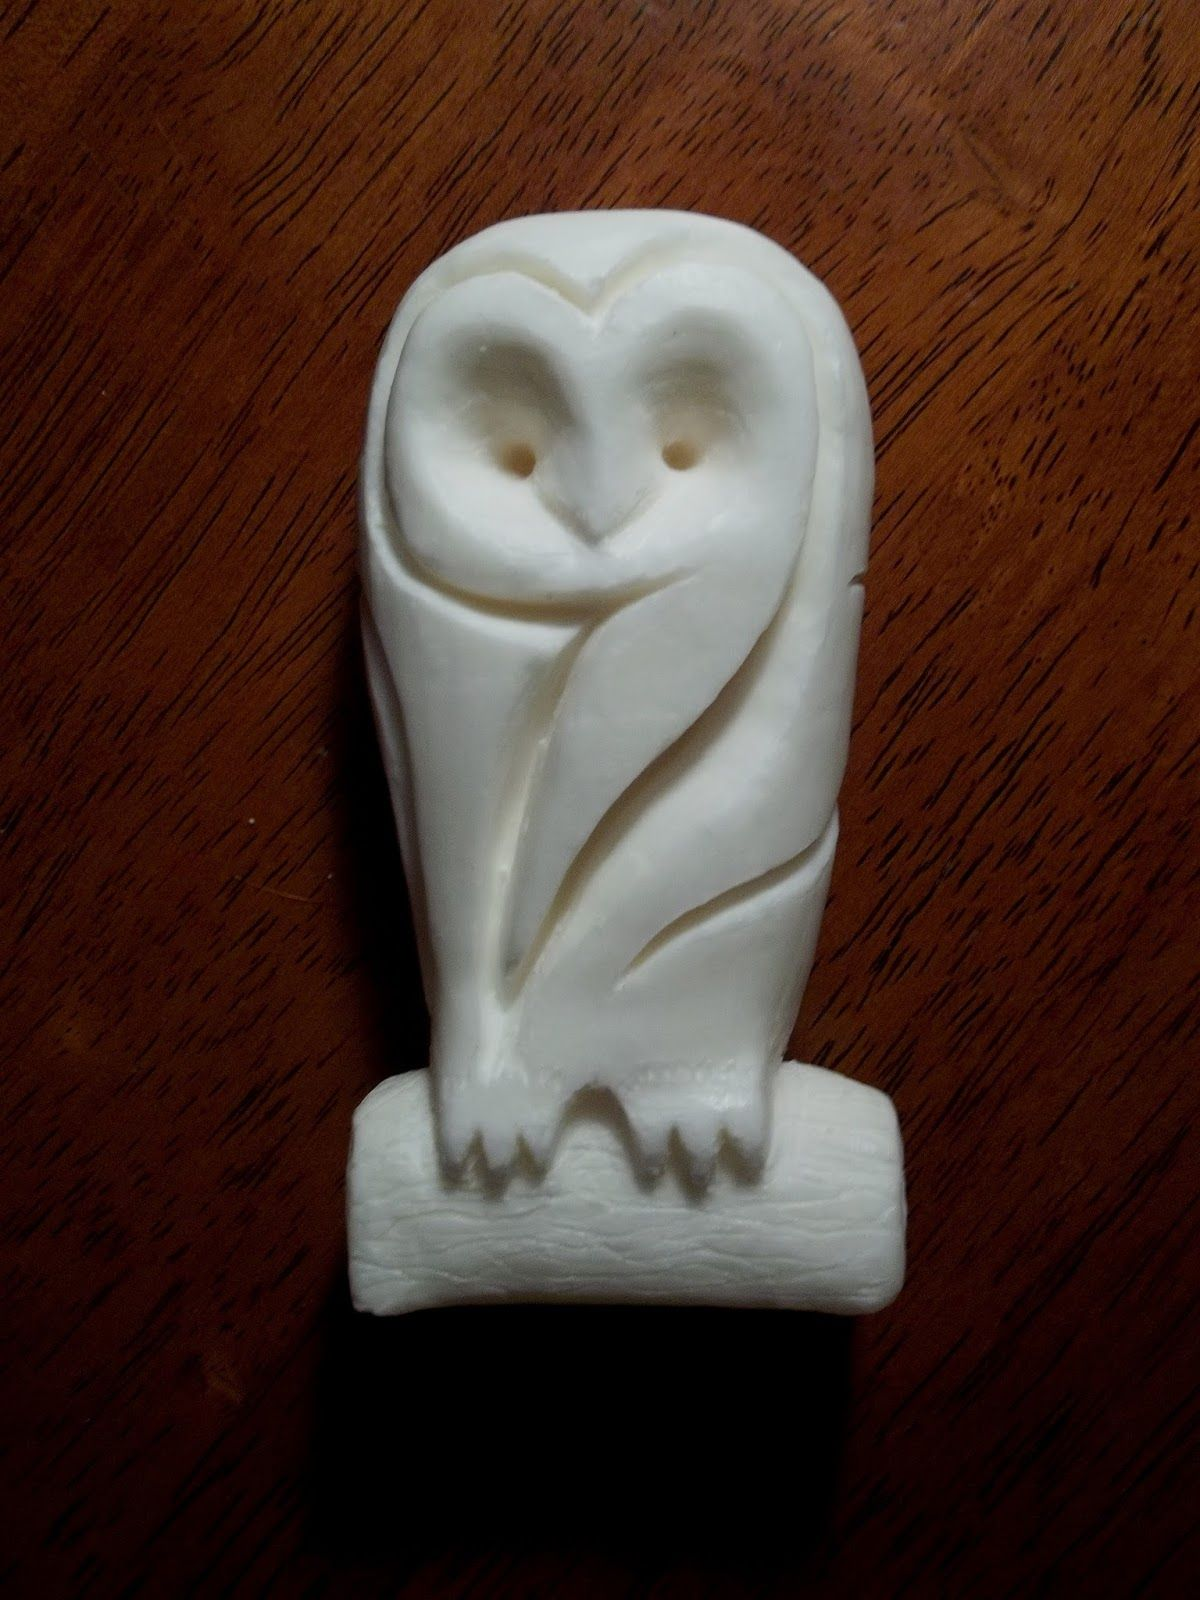 soap sculpture owl - Google Search | Cant stop wont stop ...